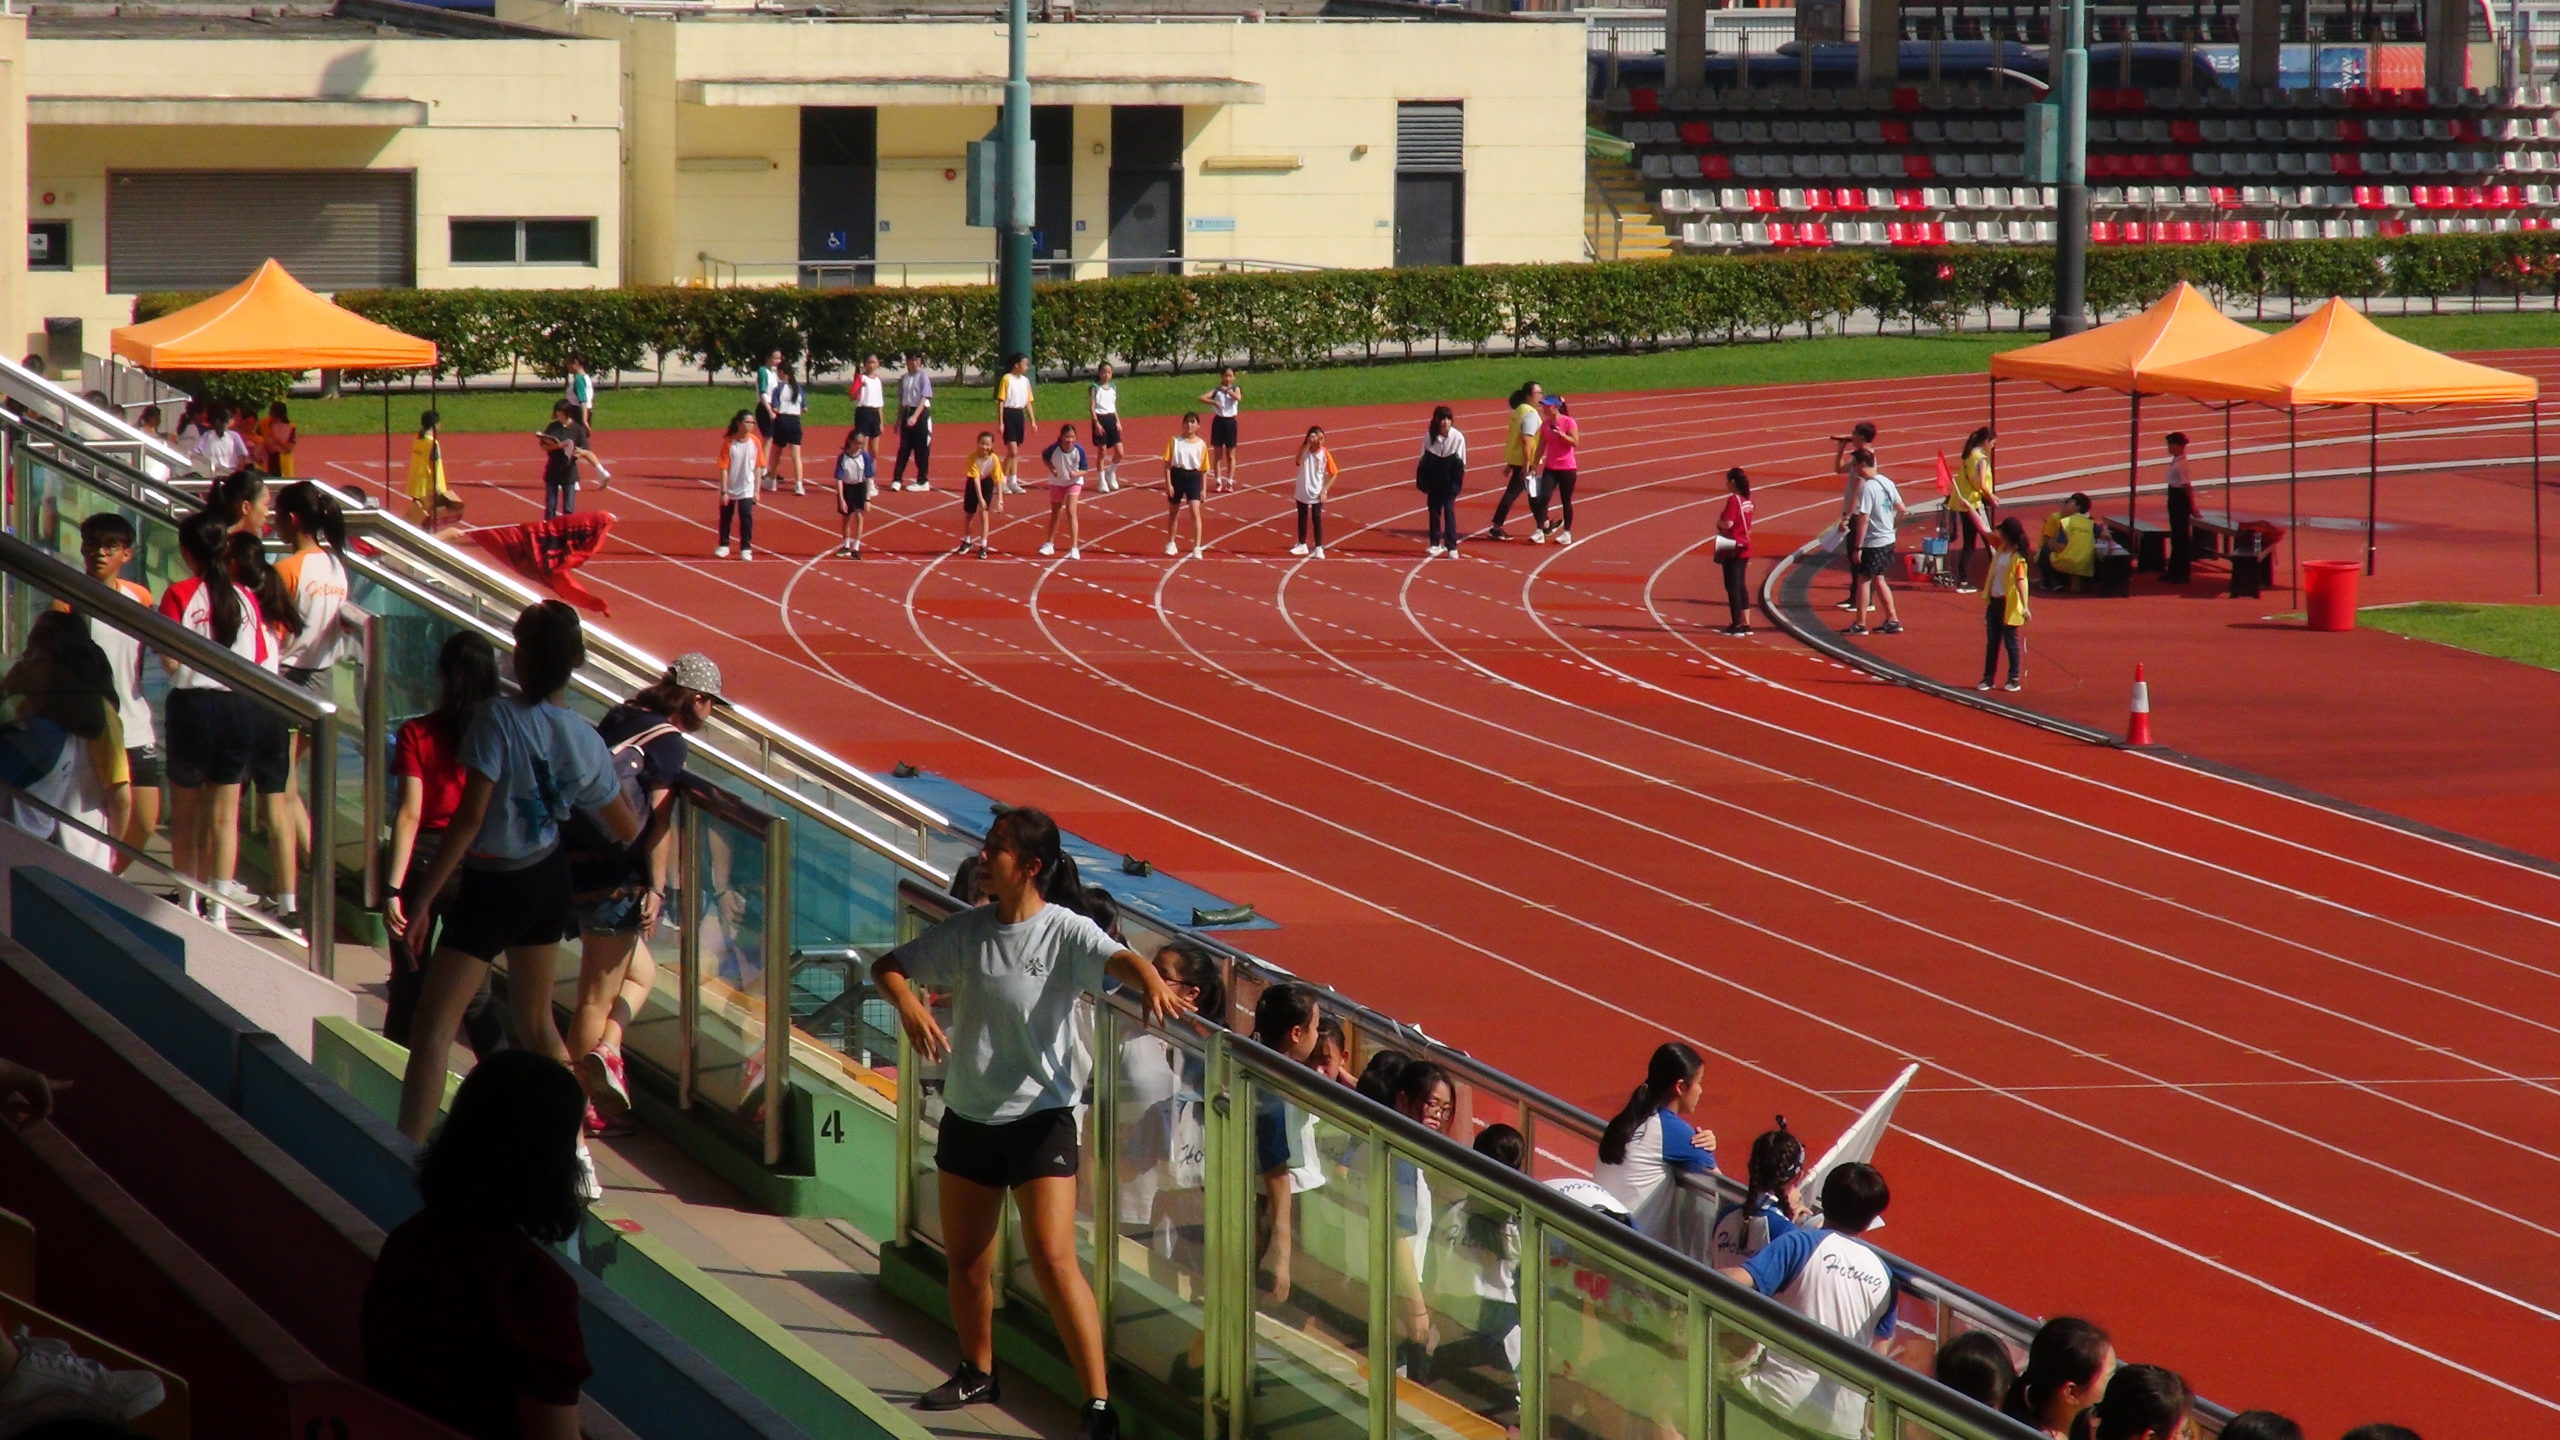 Annual Athletics Meet 2019/2020 周年陸運會 2019/2020